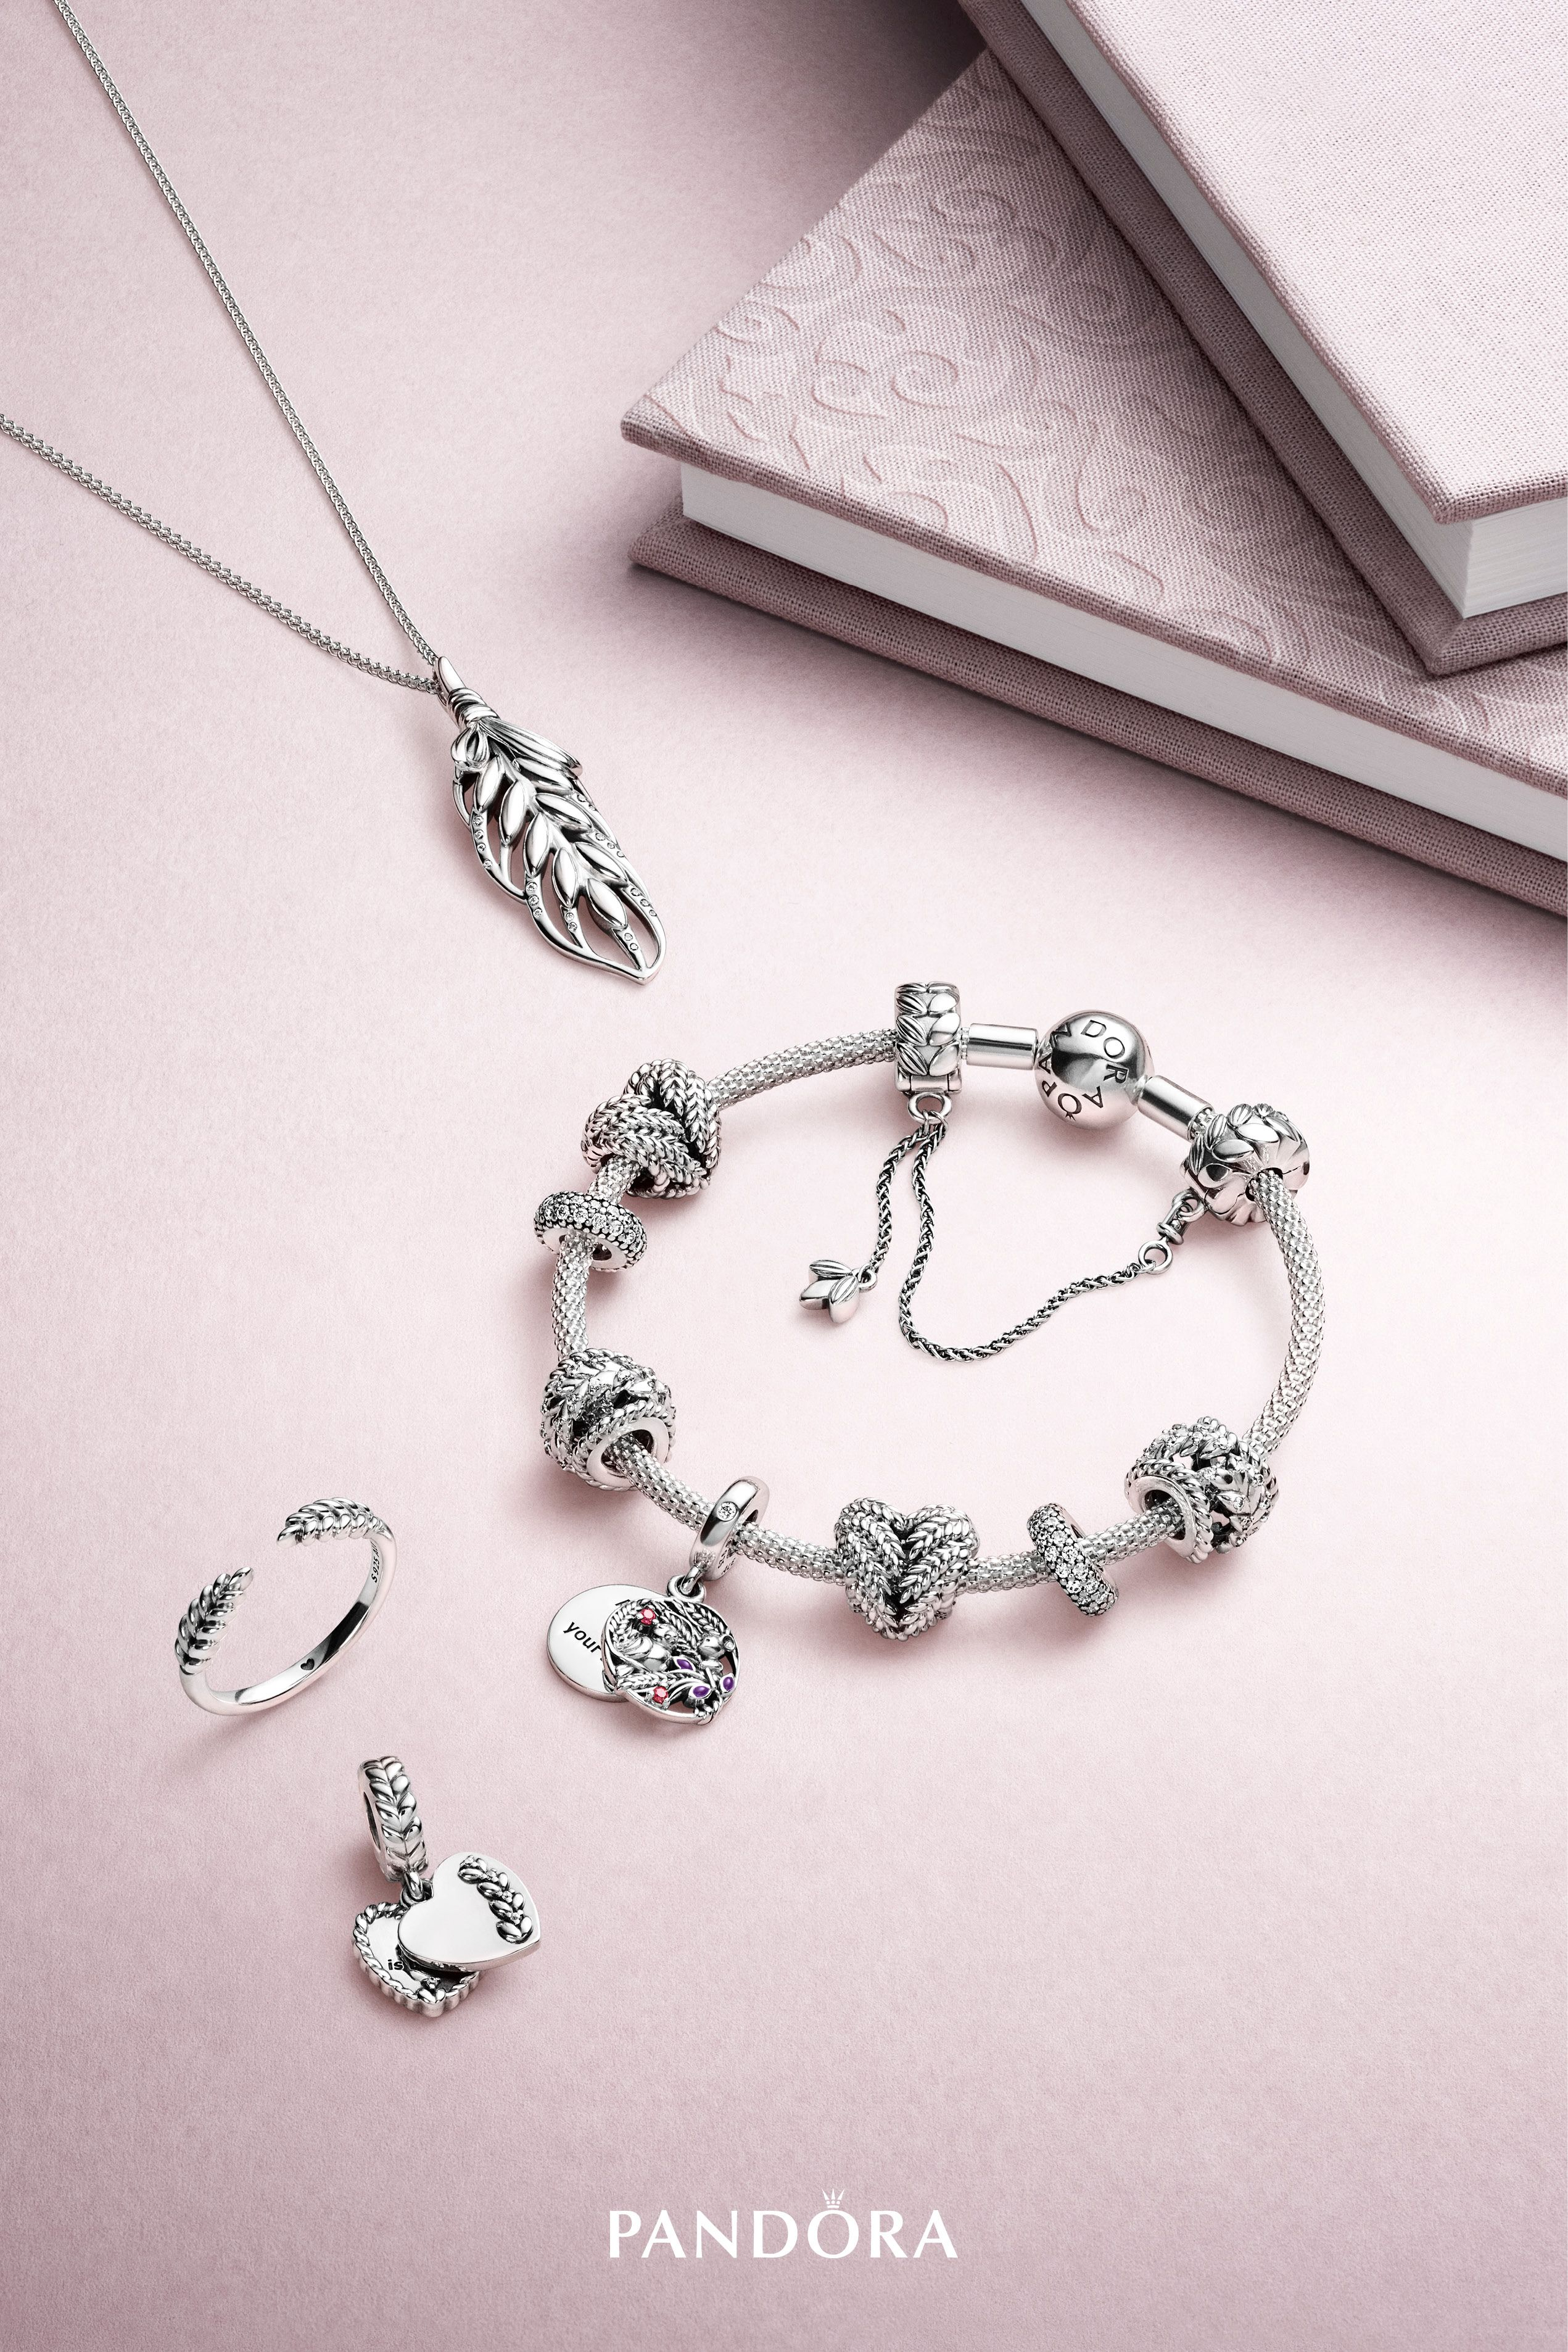 648d4bcf2 Style takes on a fresh feel this season as new season charms mix filigree  patterns, woven textures, pavé embellishment and high-shine finishes to  create new ...